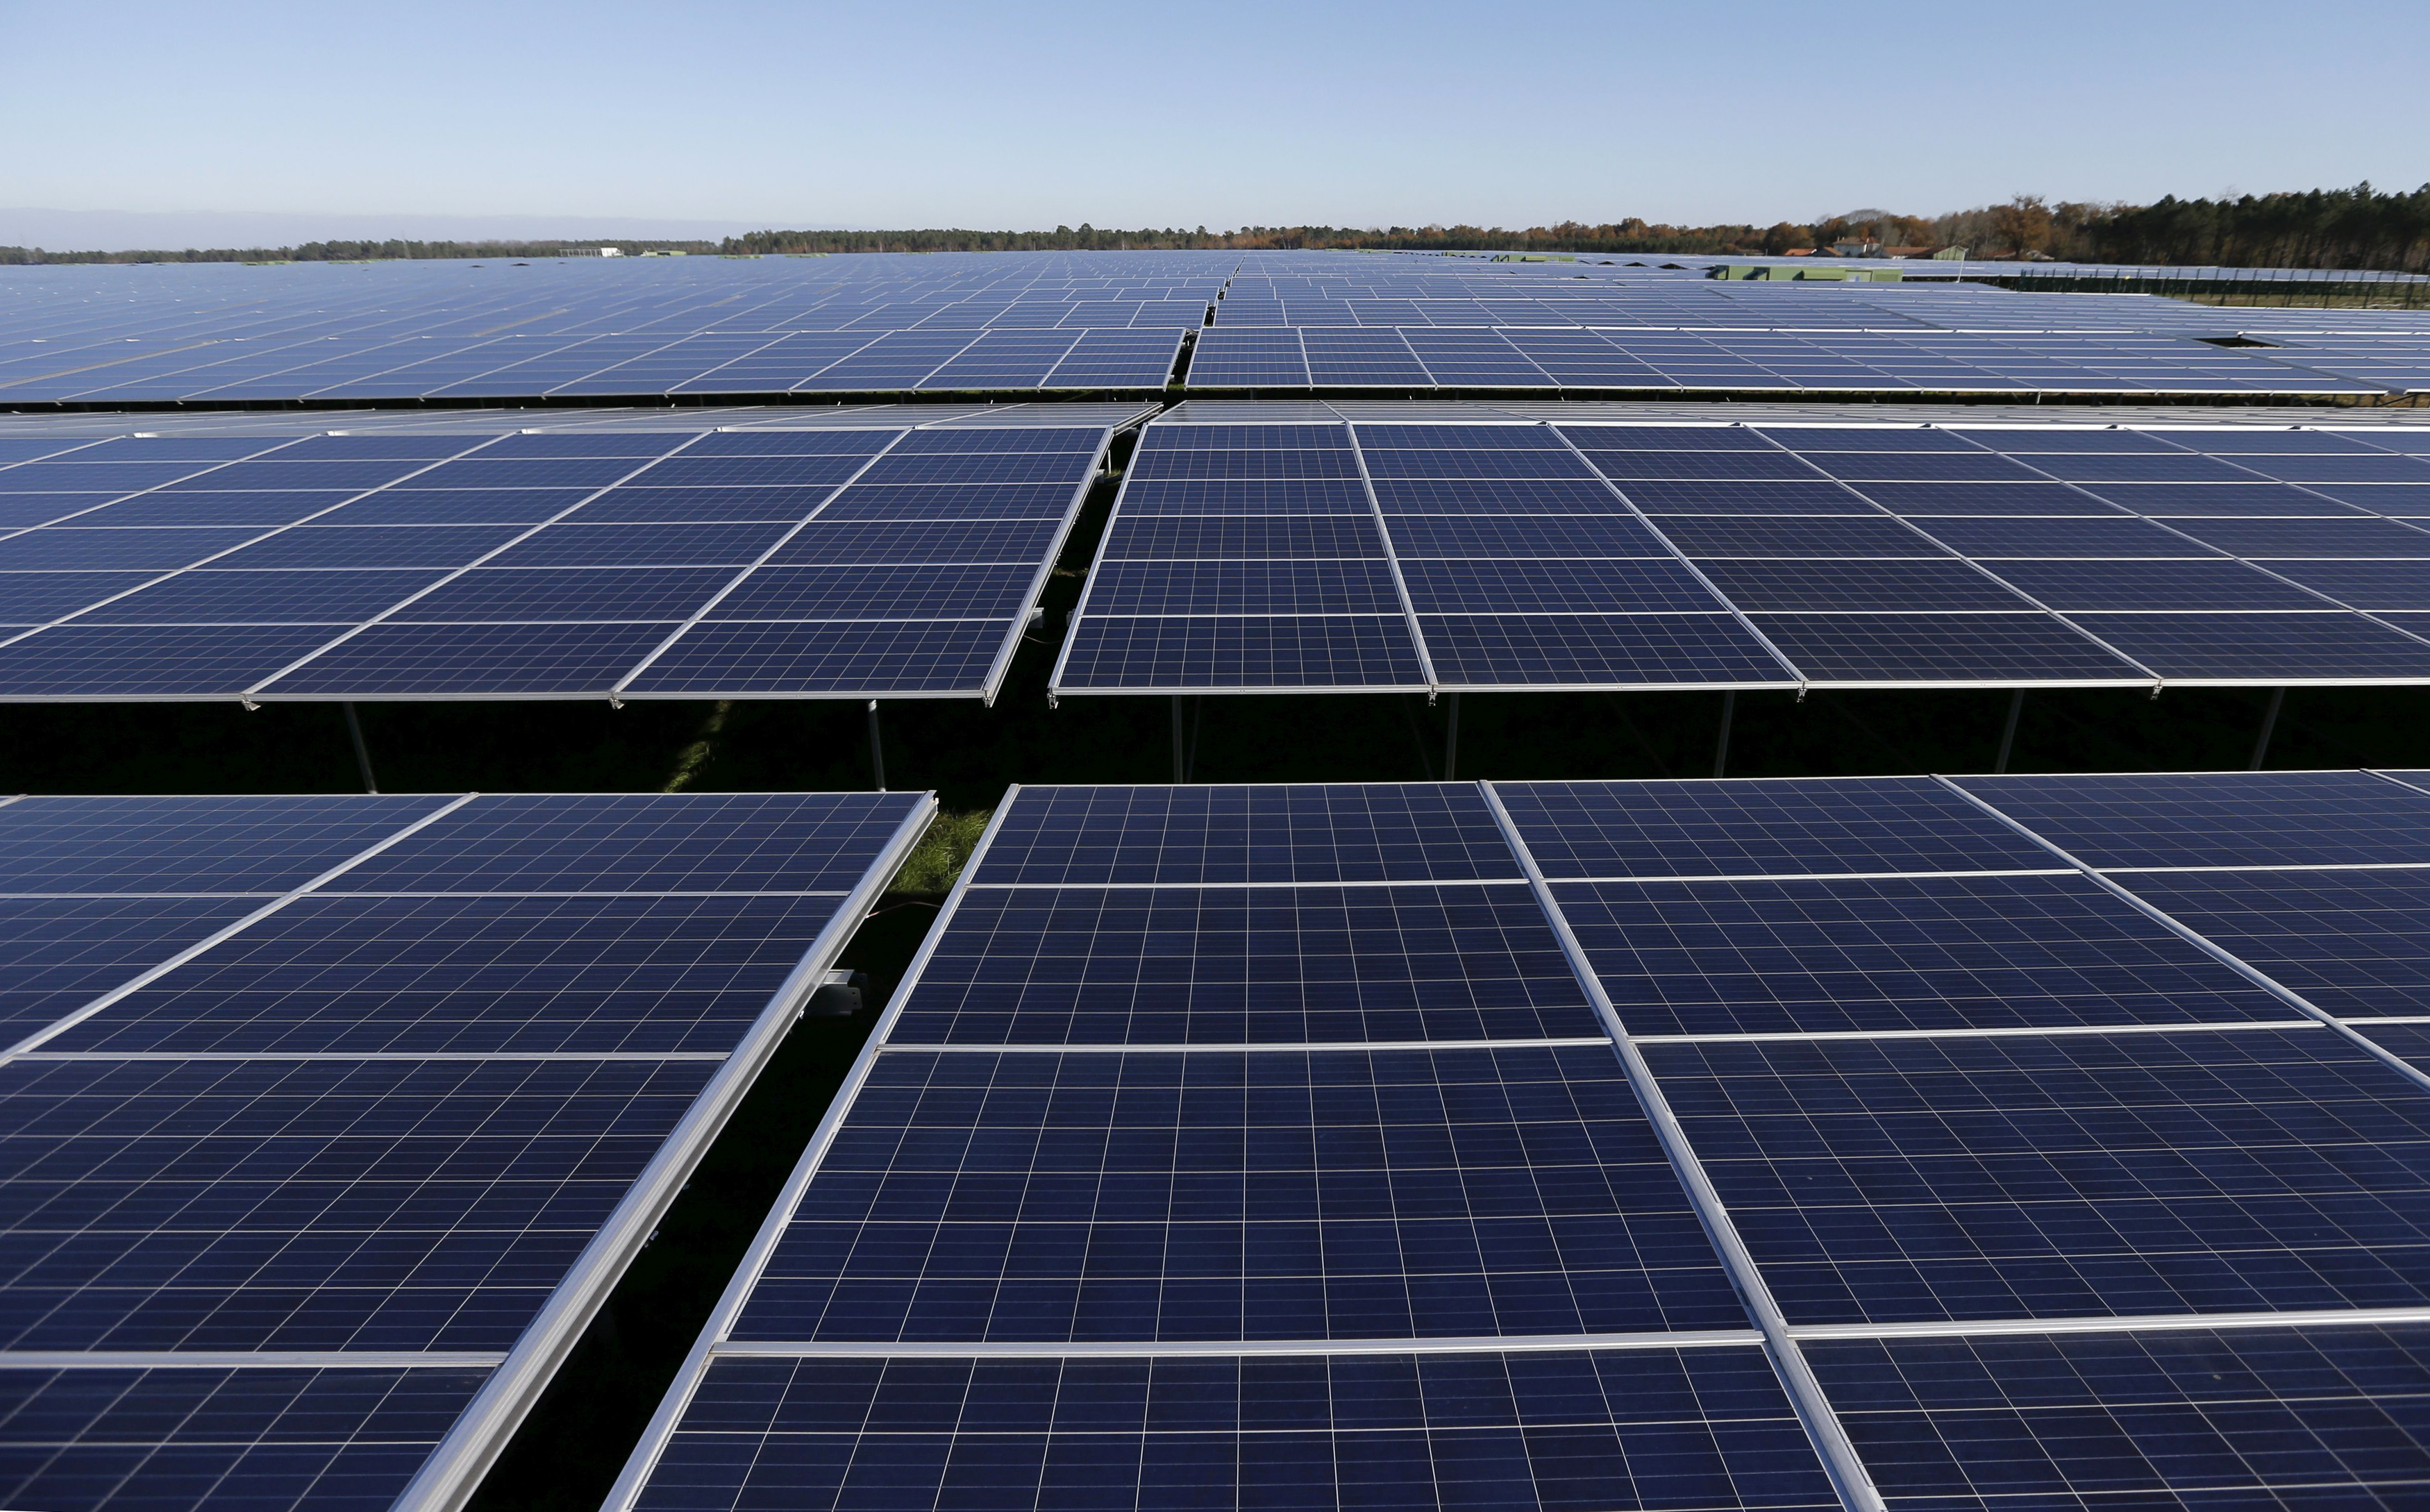 world 39 s first solar panel road opens up in normandy france. Black Bedroom Furniture Sets. Home Design Ideas